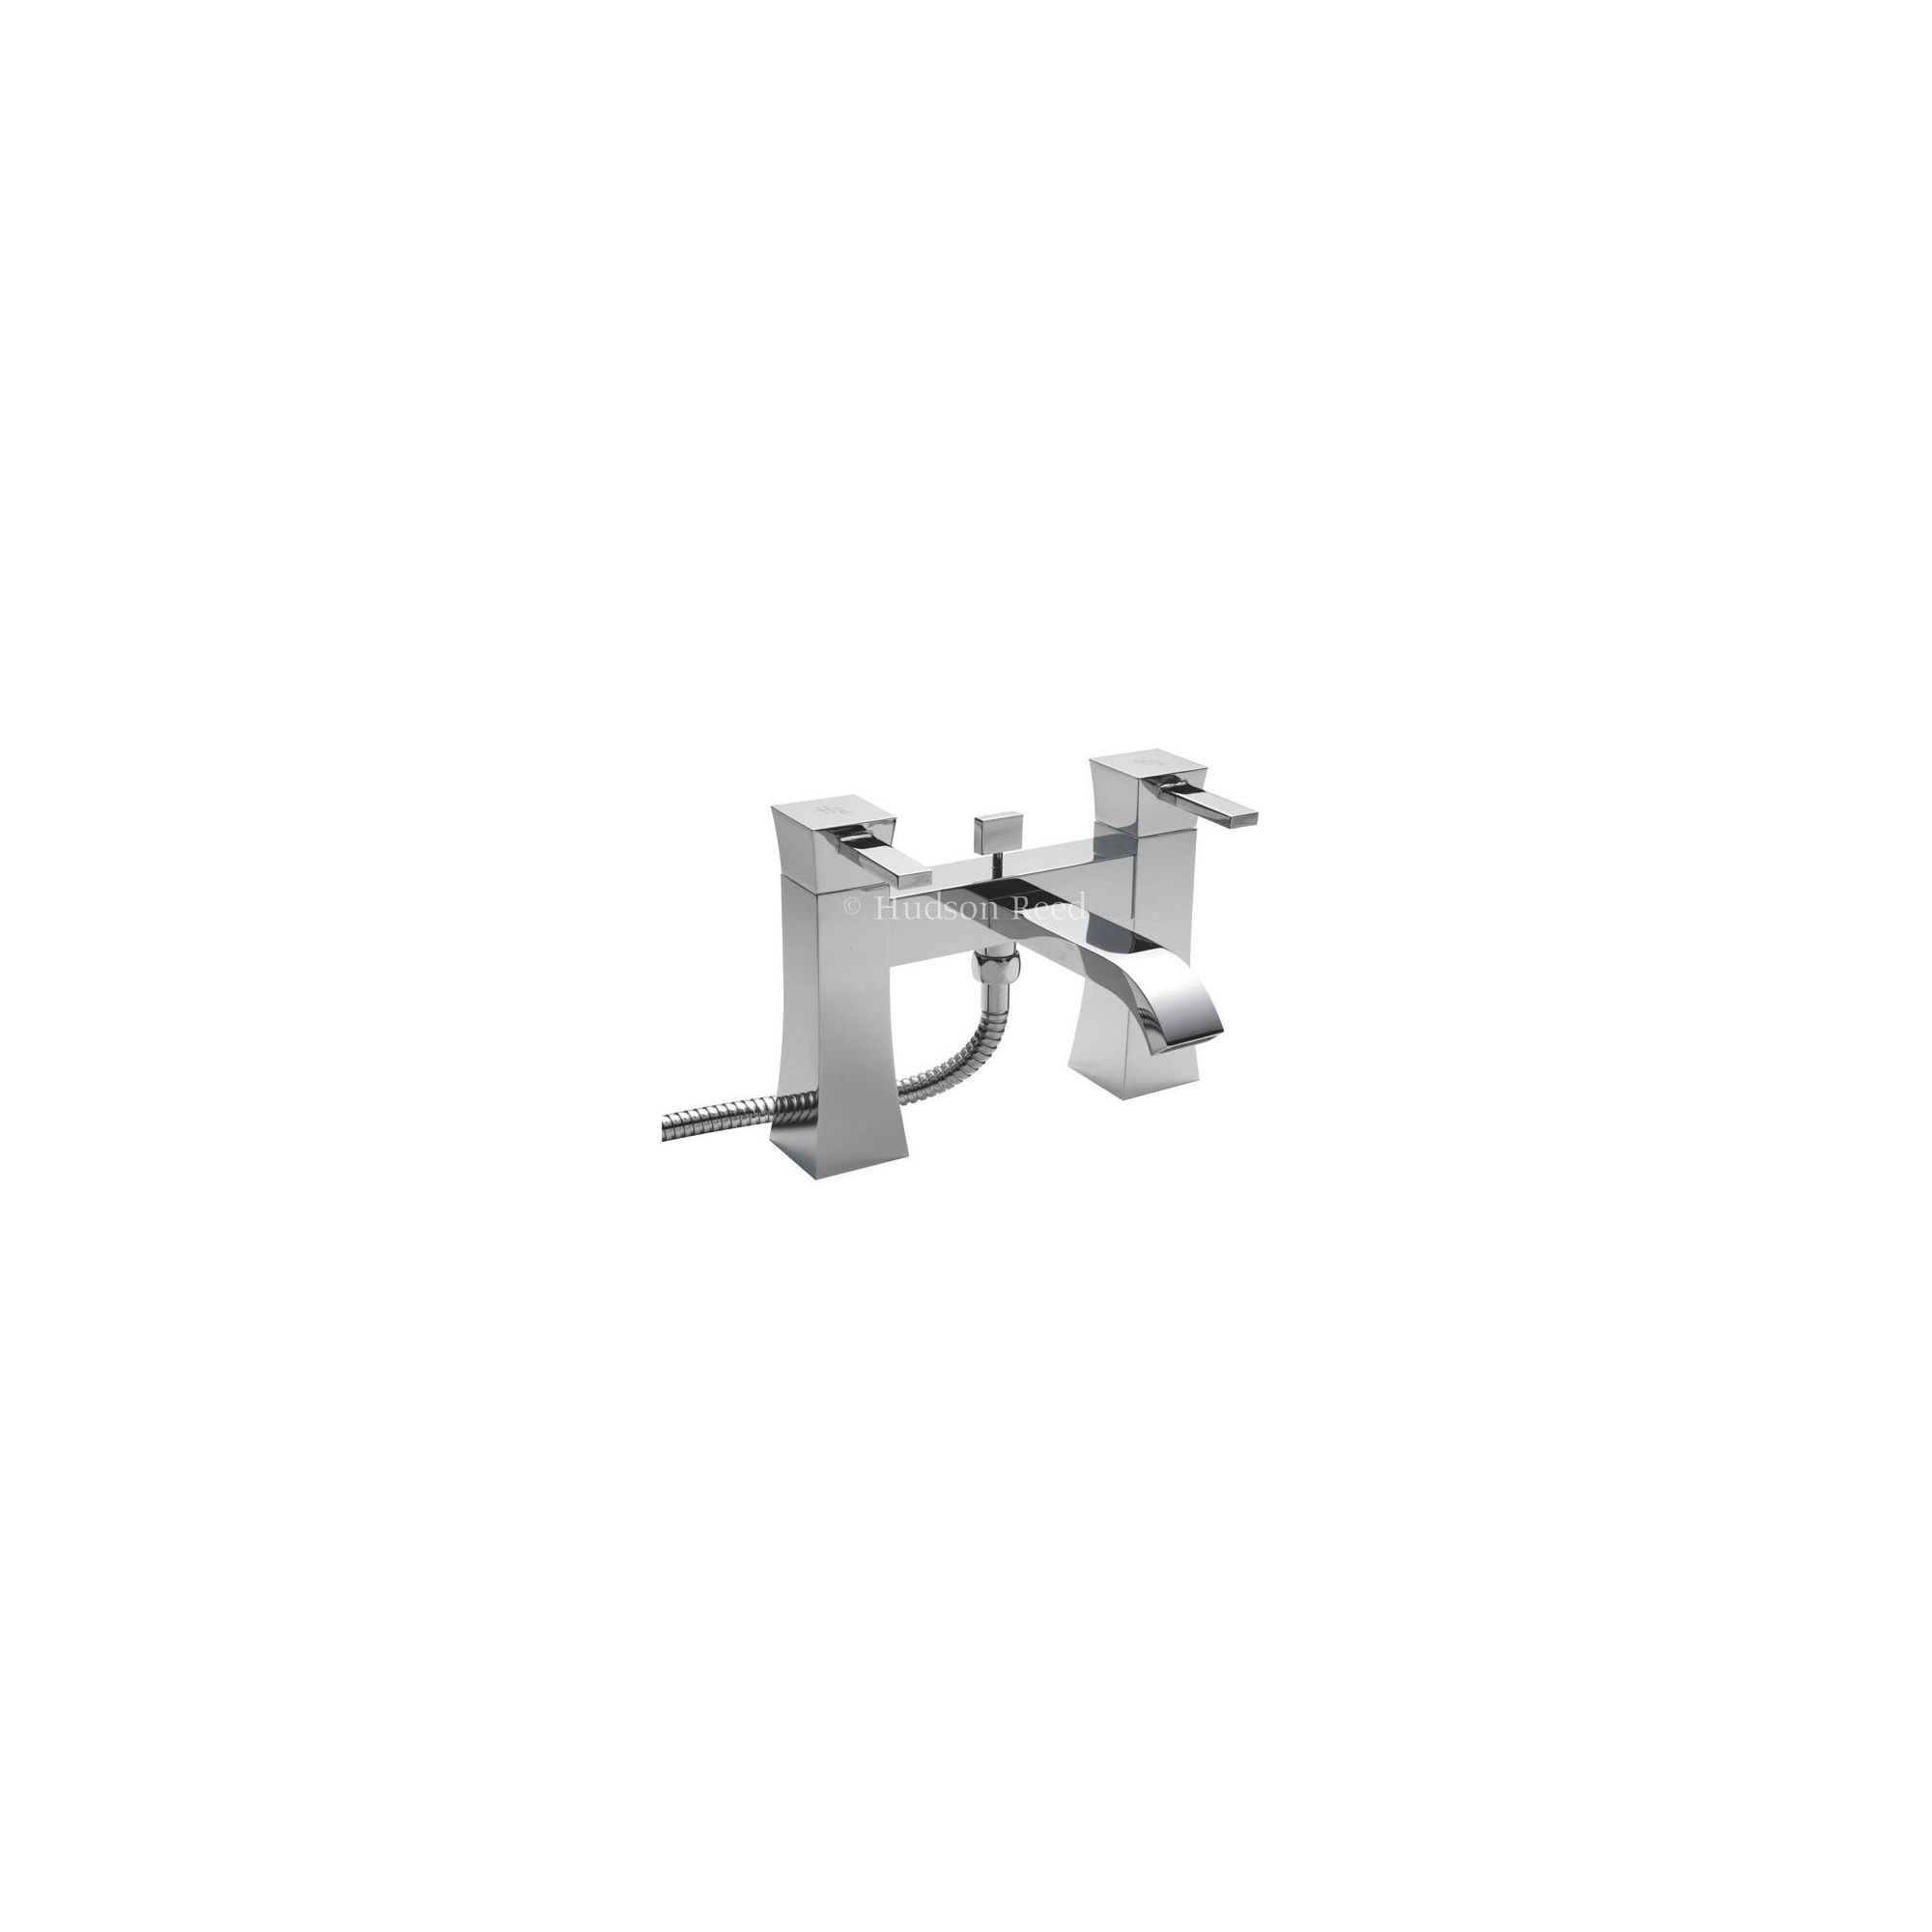 Hudson Reed Harmony Bath Shower Mixer Tap with Shower Kit and Wall Bracket at Tesco Direct